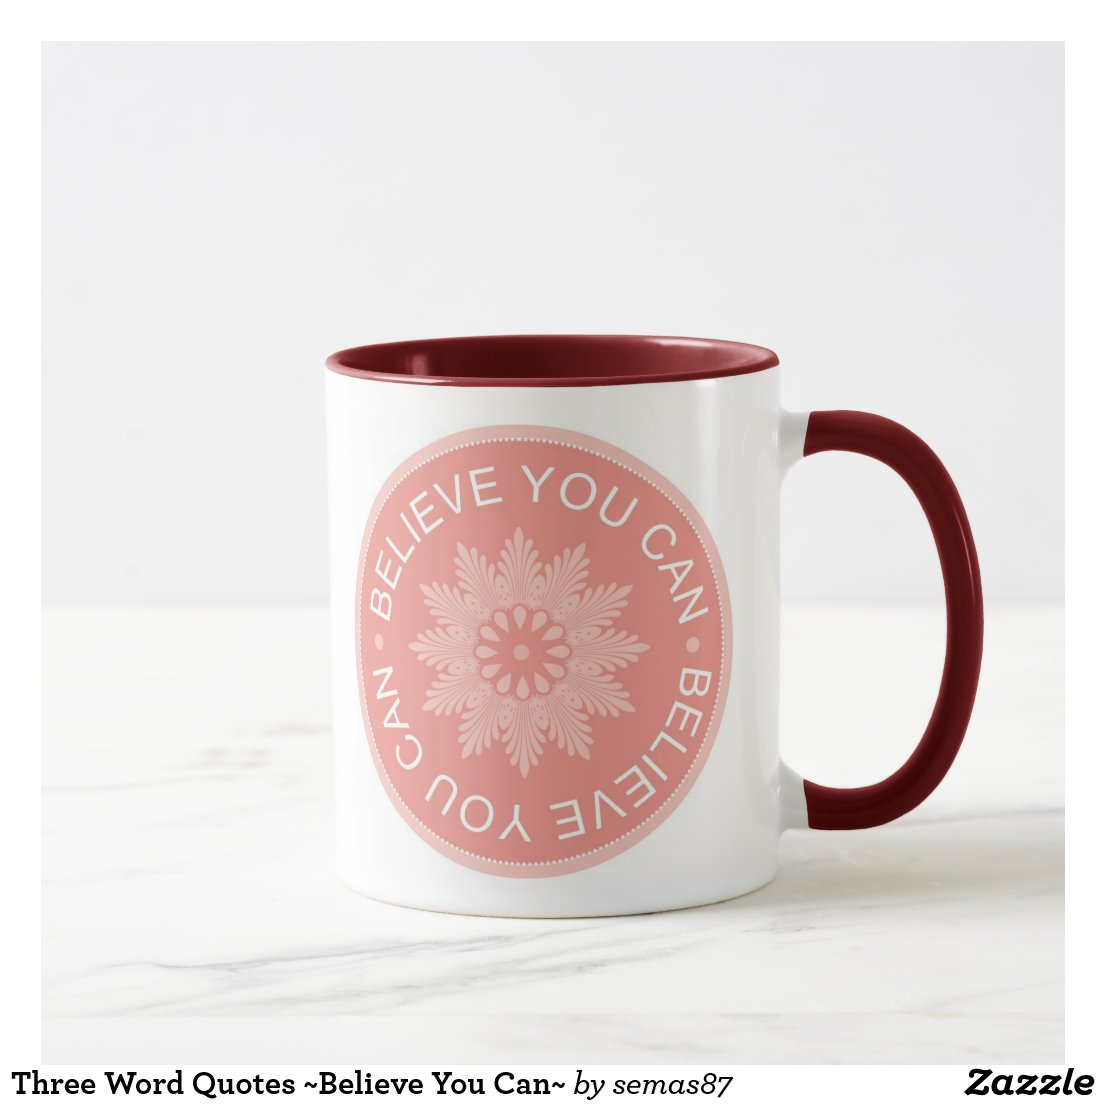 Three Word Quotes ~Believe You Can~ Mug